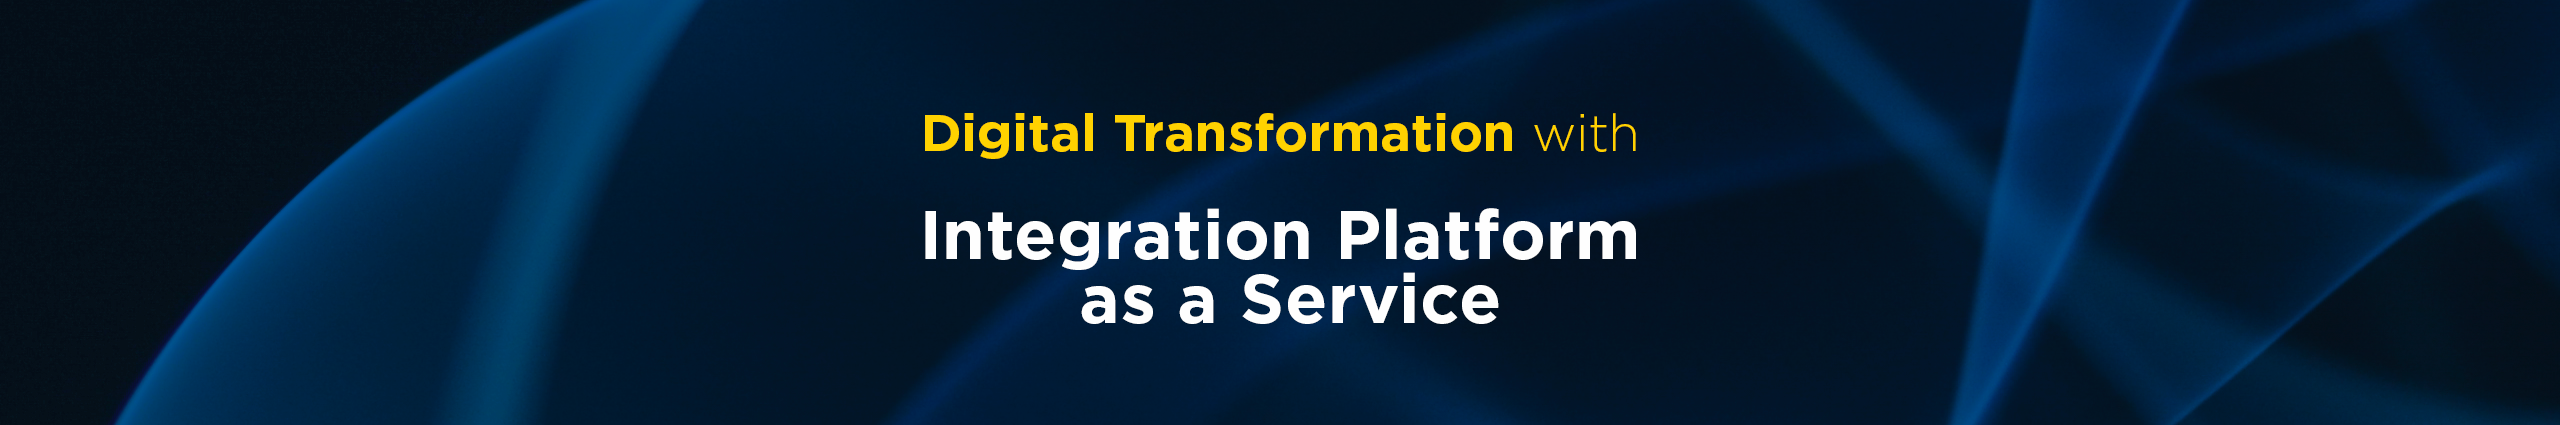 Digital-Transformation-with-Integration-Platform-as-a-Service-(iPaaS)